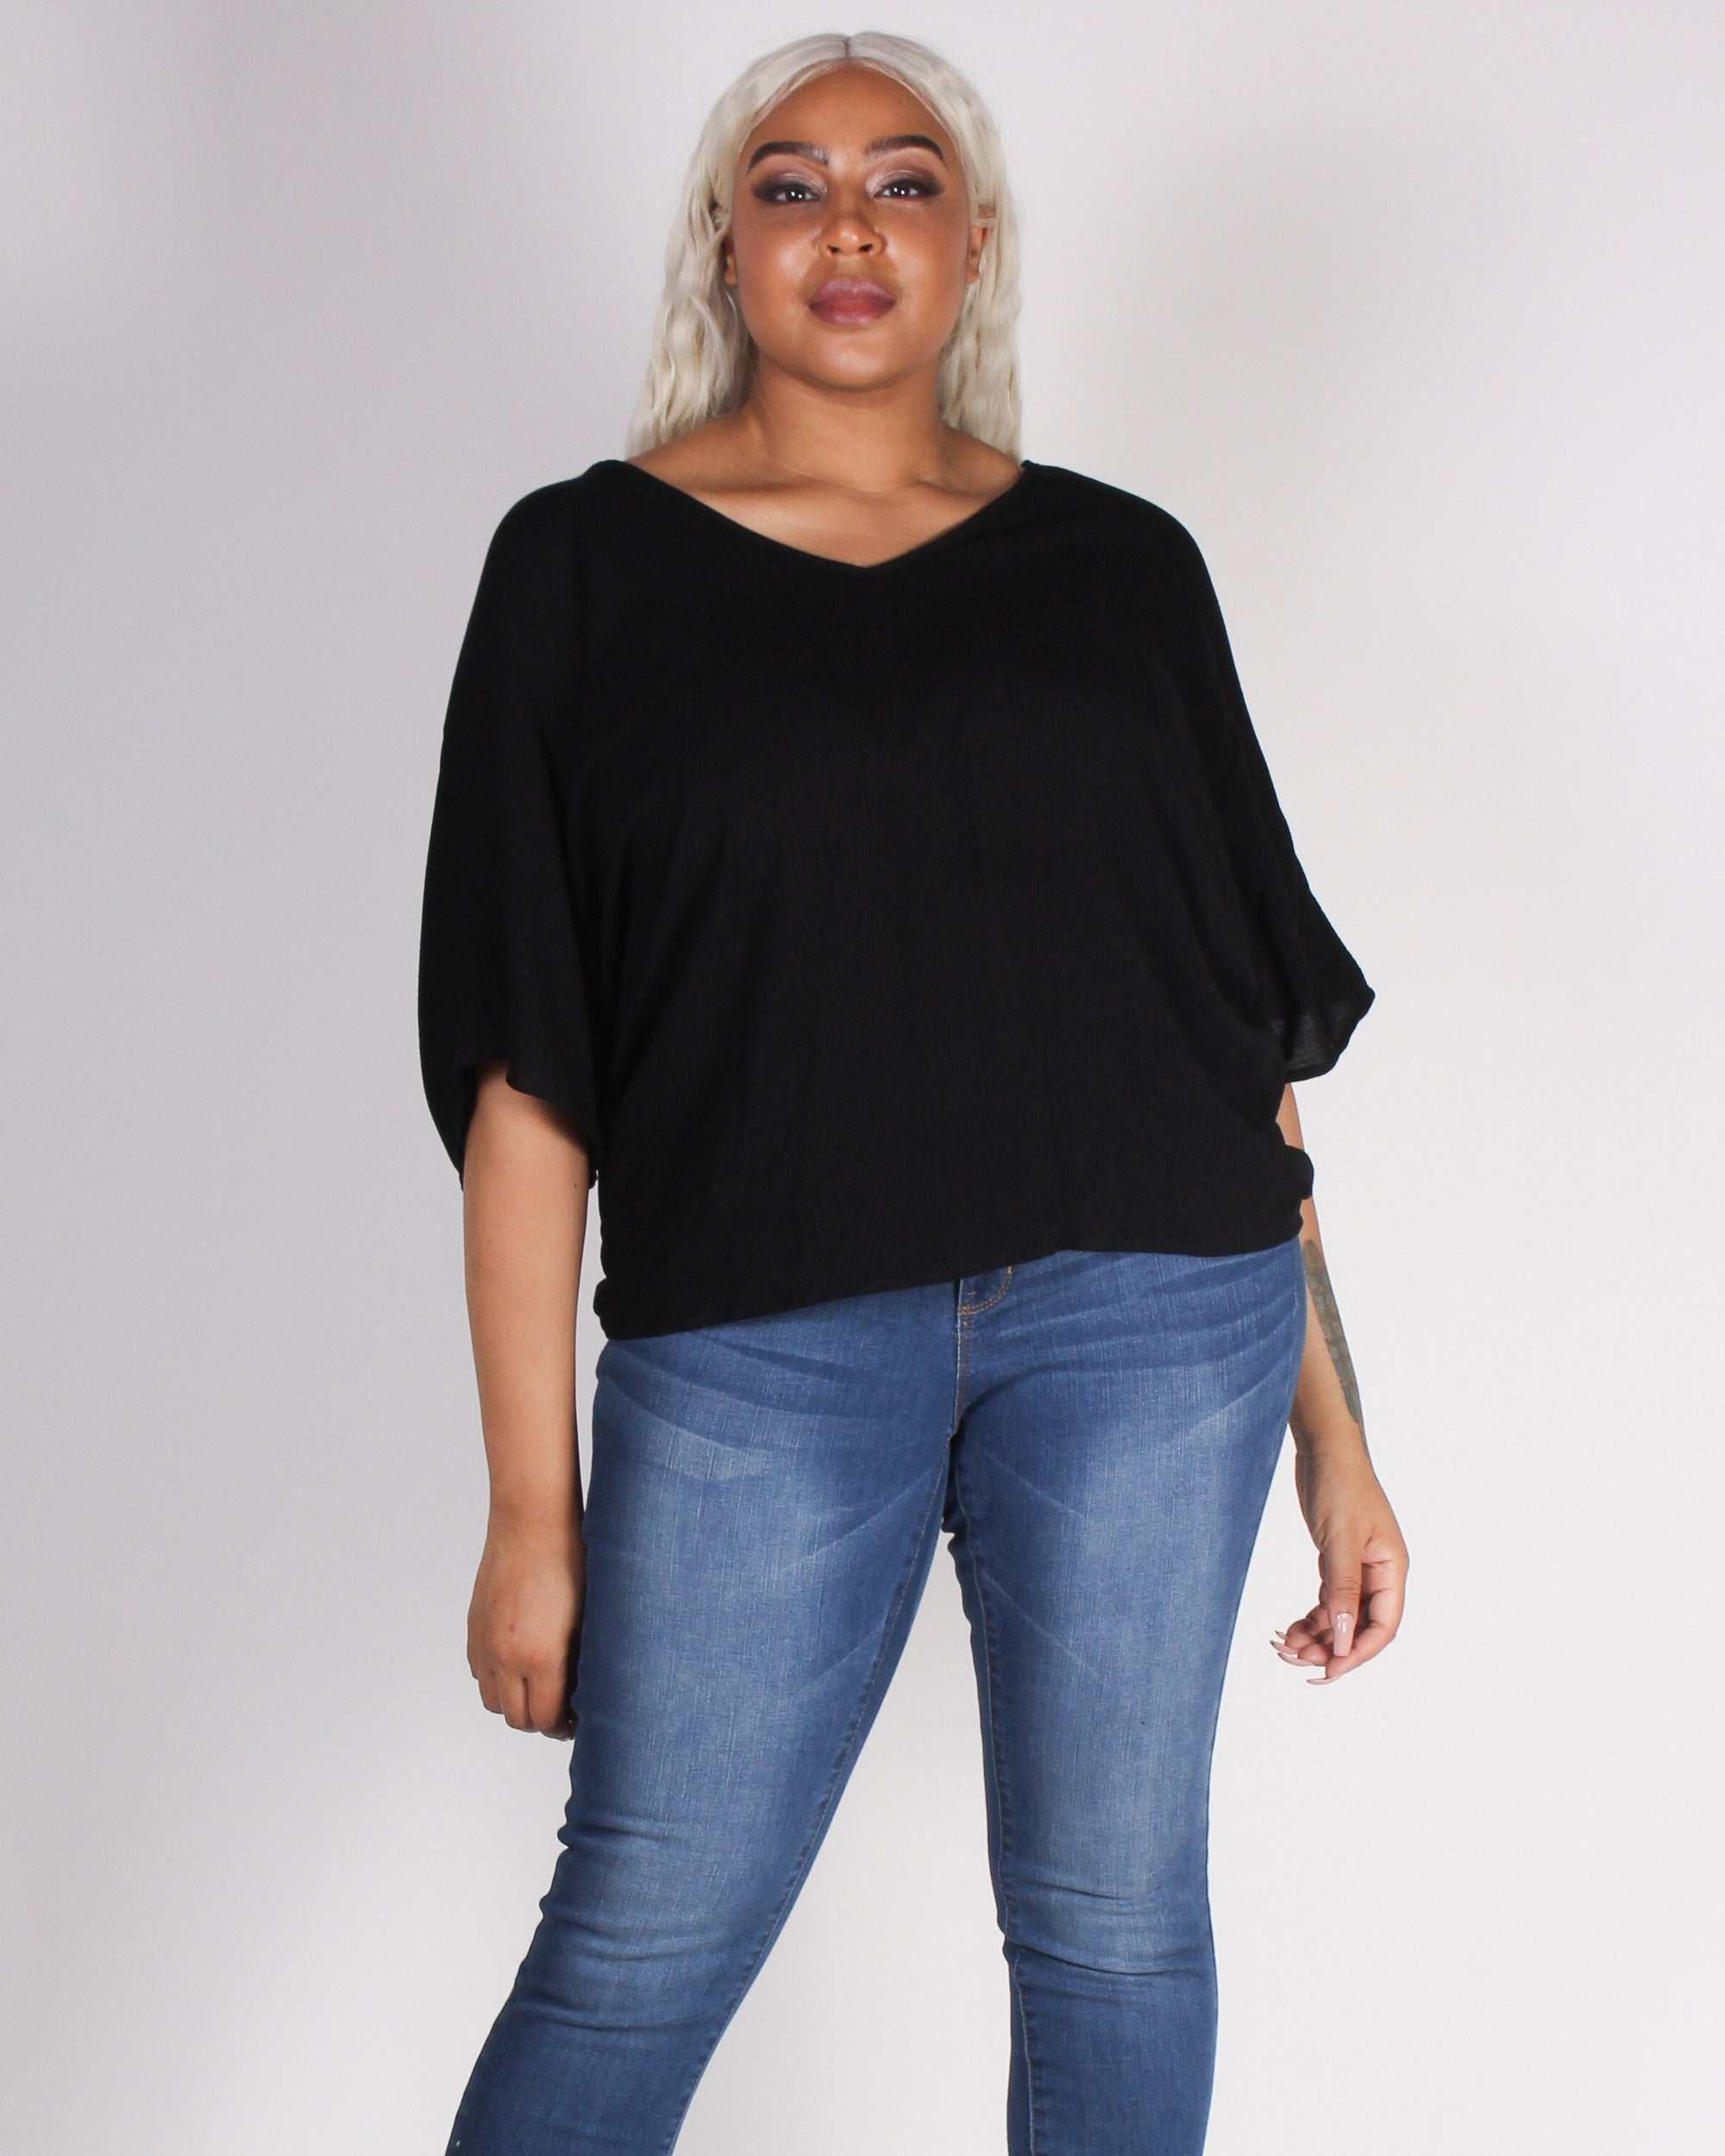 Fashion Q Shop Q Positivity is a Superpower Plus Blouse (Black) BLT1600